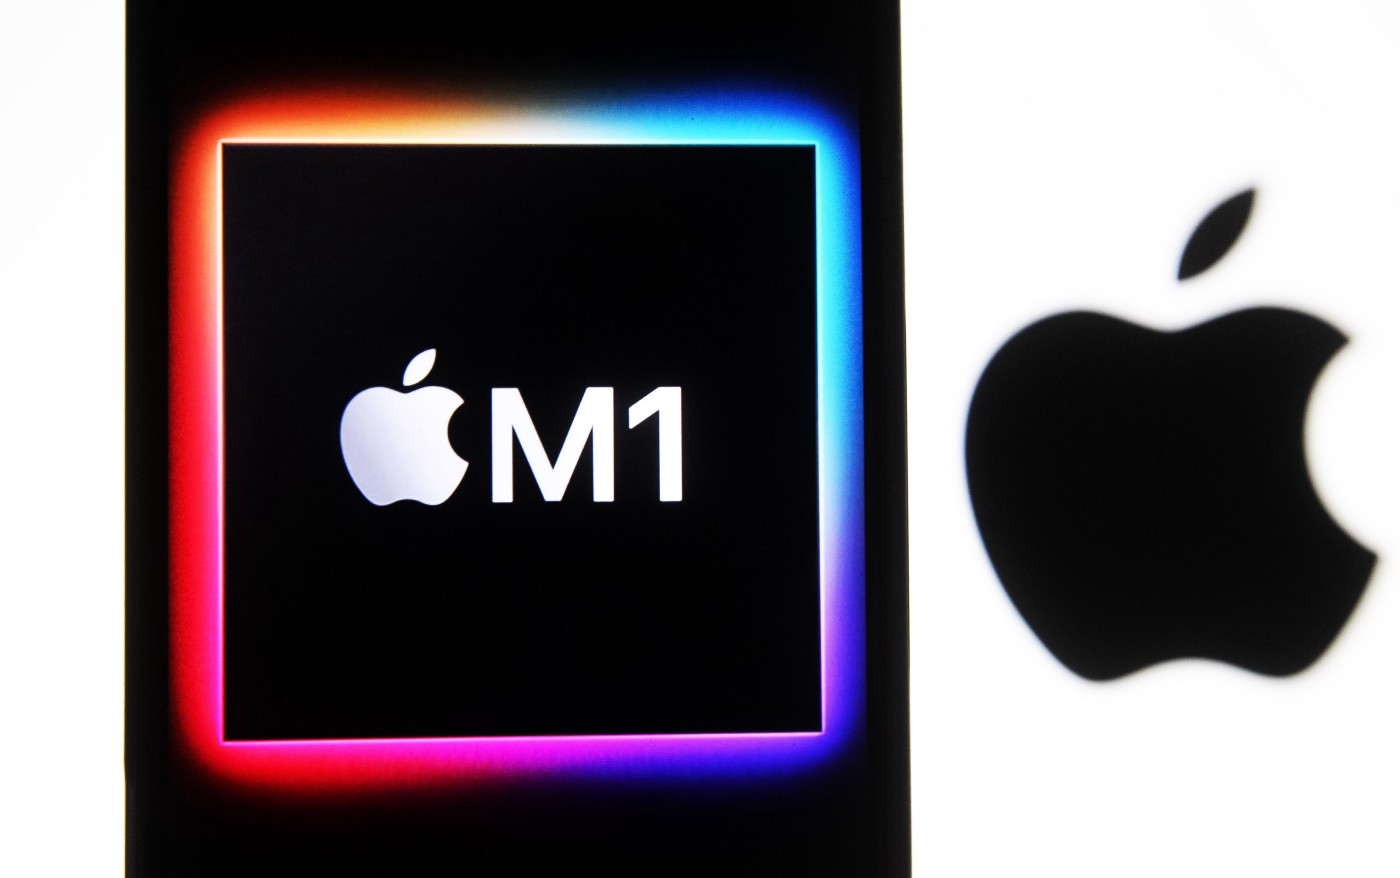 The Apple M1 chip computer logo seen on a mobile phone screen next to a larger Apple logo